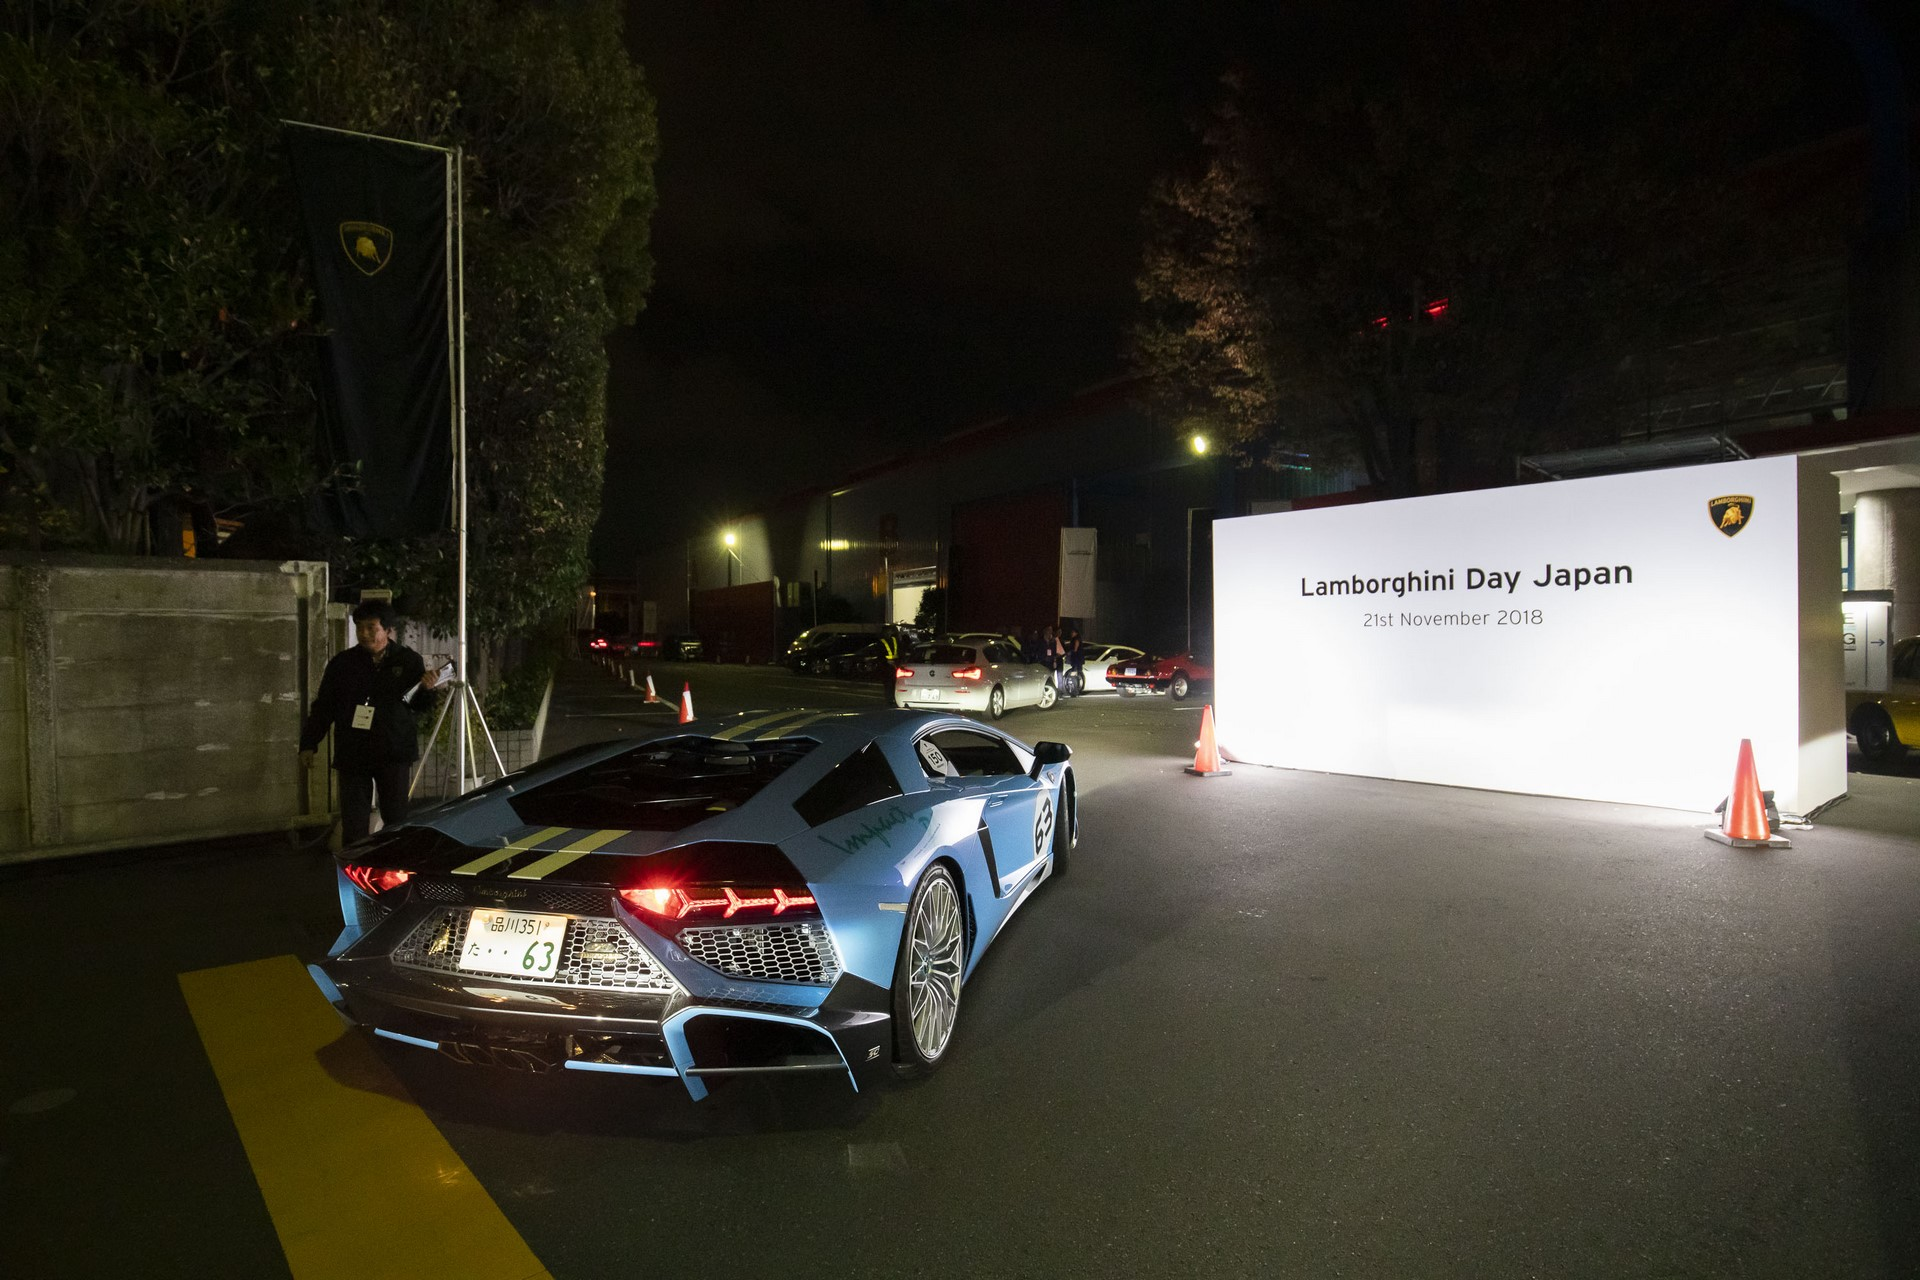 Lamborghini Day Japan 2018 (8)